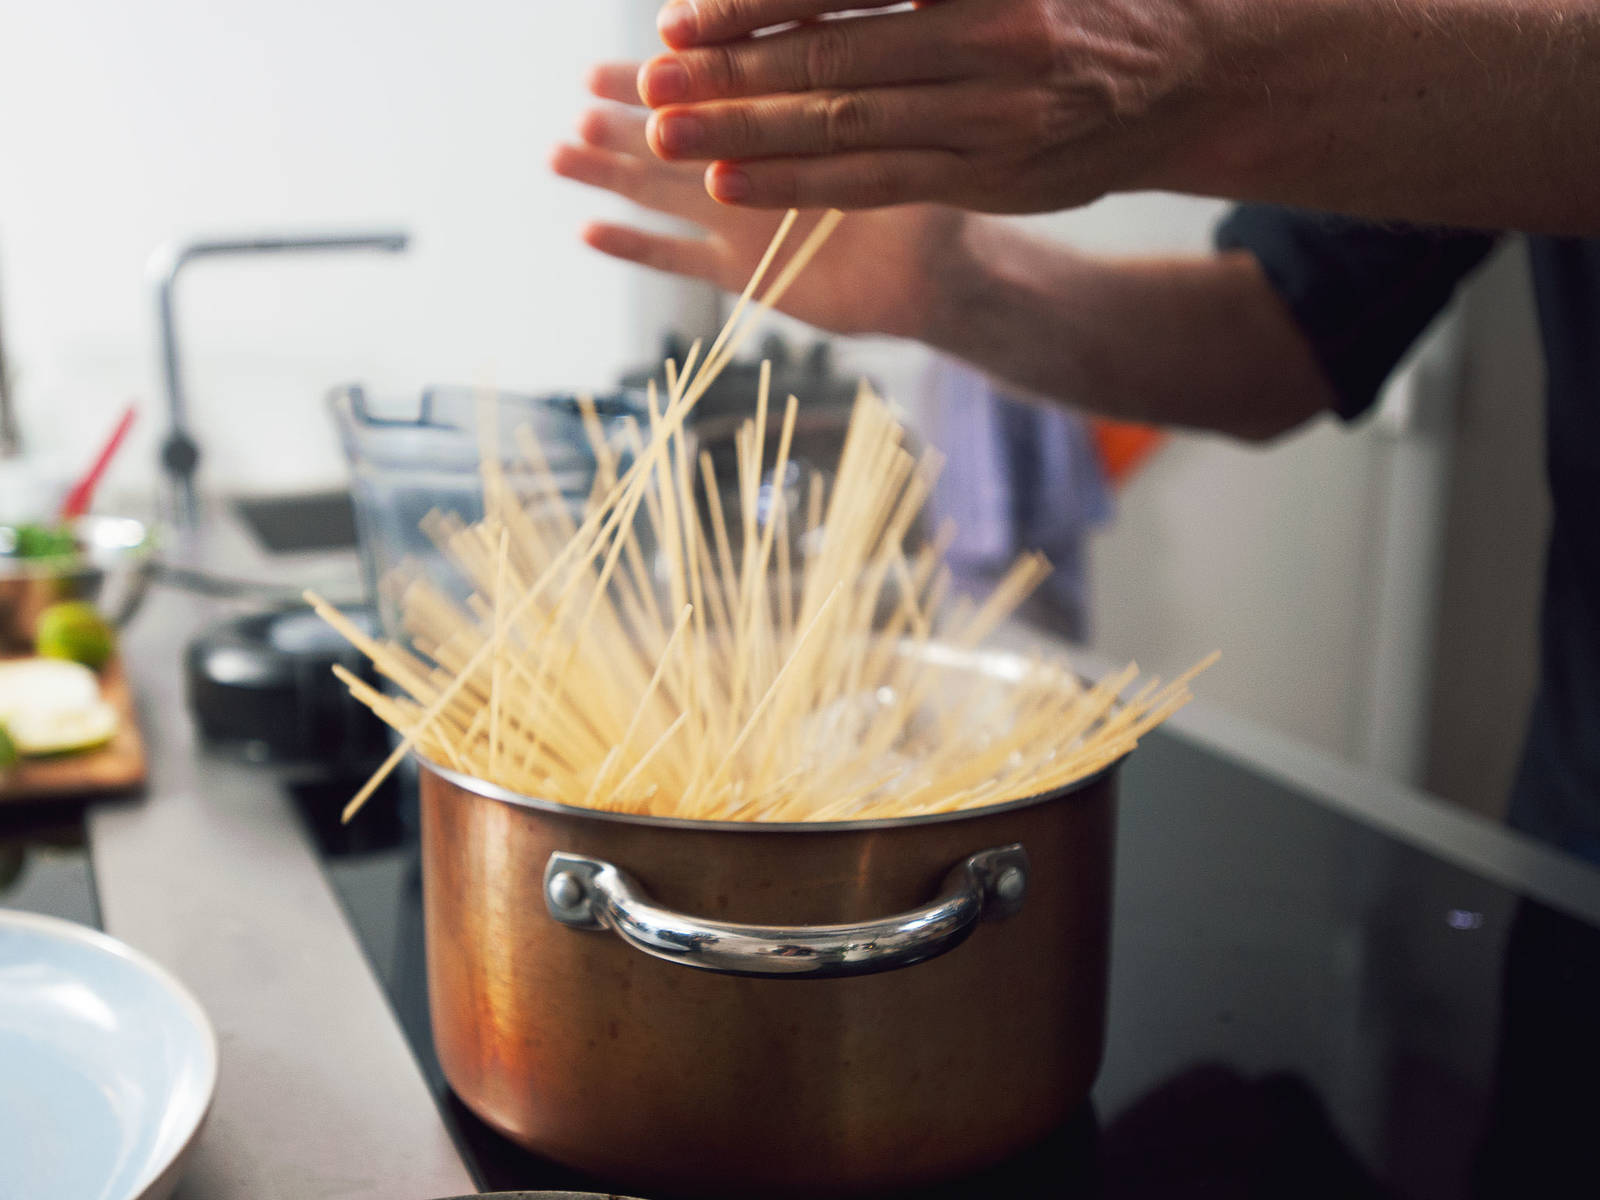 Bring water to a boil in a large pot with a lid over medium-high heat. Salt the water and add spelt spaghetti. Reduce heat to medium and cook for approx. 8 – 10 min., until al dente